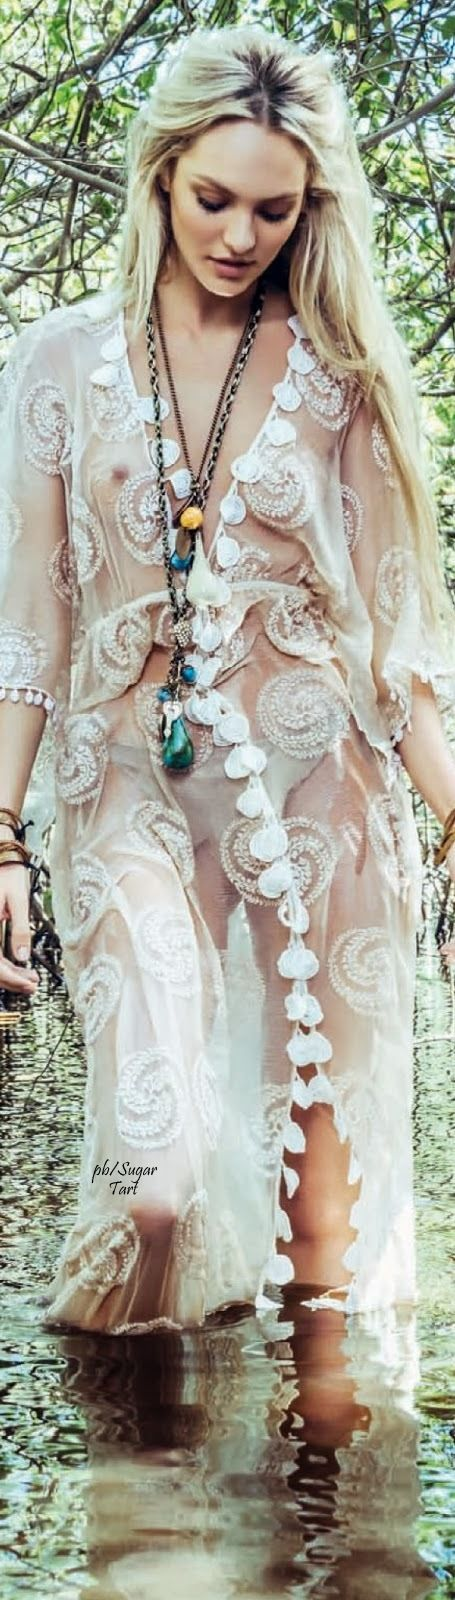 Boho chic sheer kimono with modern hippie long layered necklaces. For the BEST Bohemian fashion trends FOLLOW https://www.pinterest.com/happygolicky/the-best-boho-chic-fashion-bohemian-jewelry-gypsy-/ now